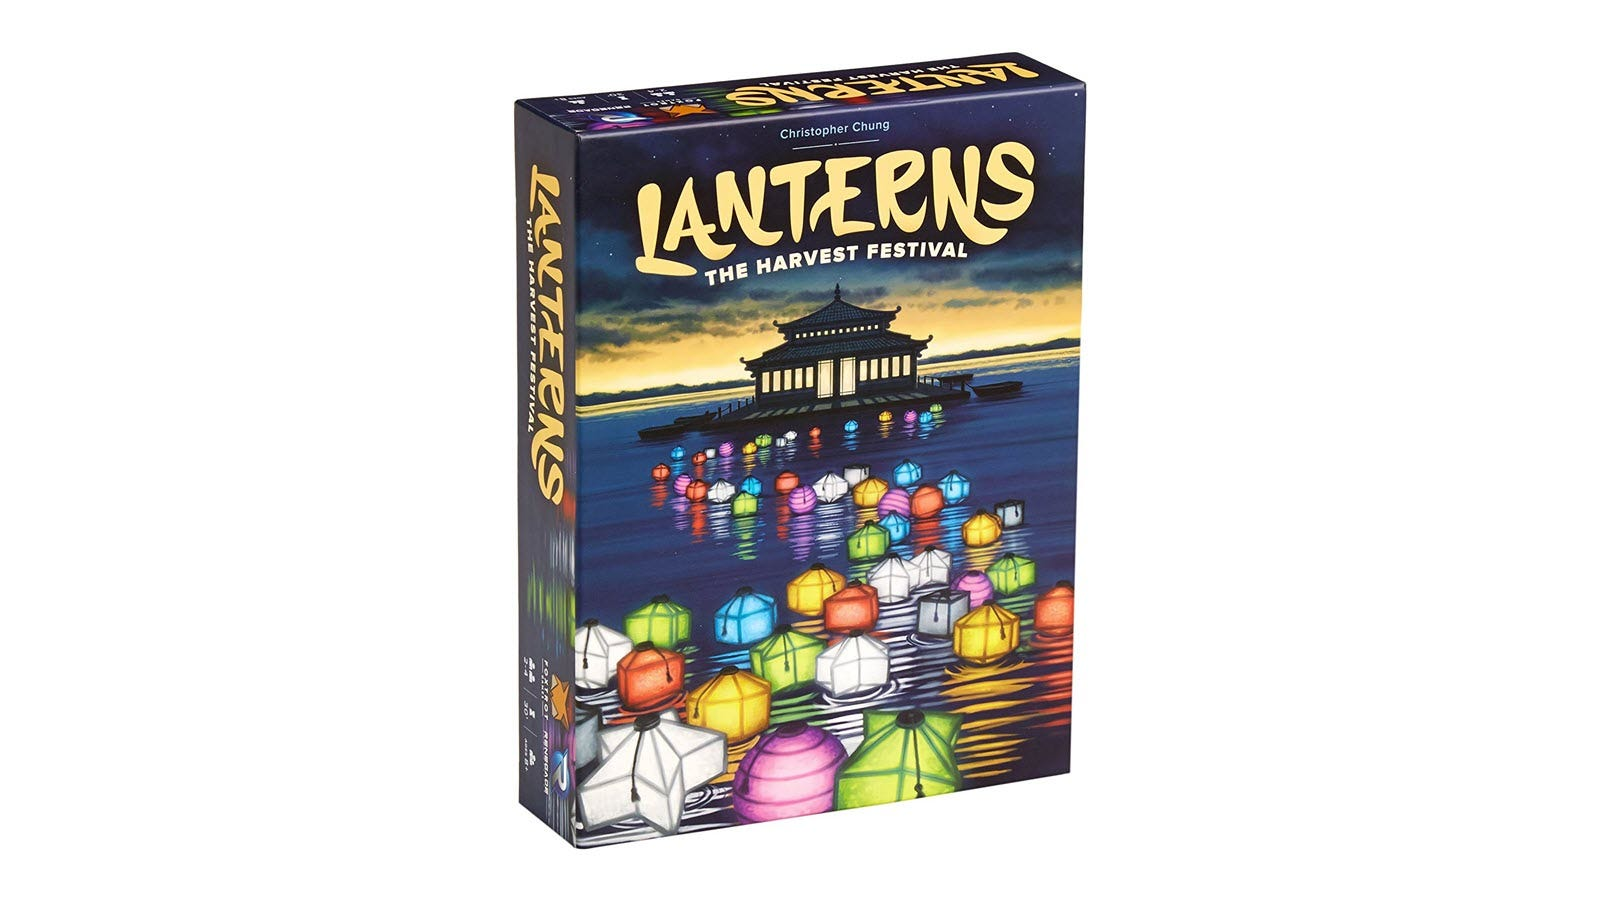 The Lanterns game box featuring colored lanterns floating in a line on a lake.